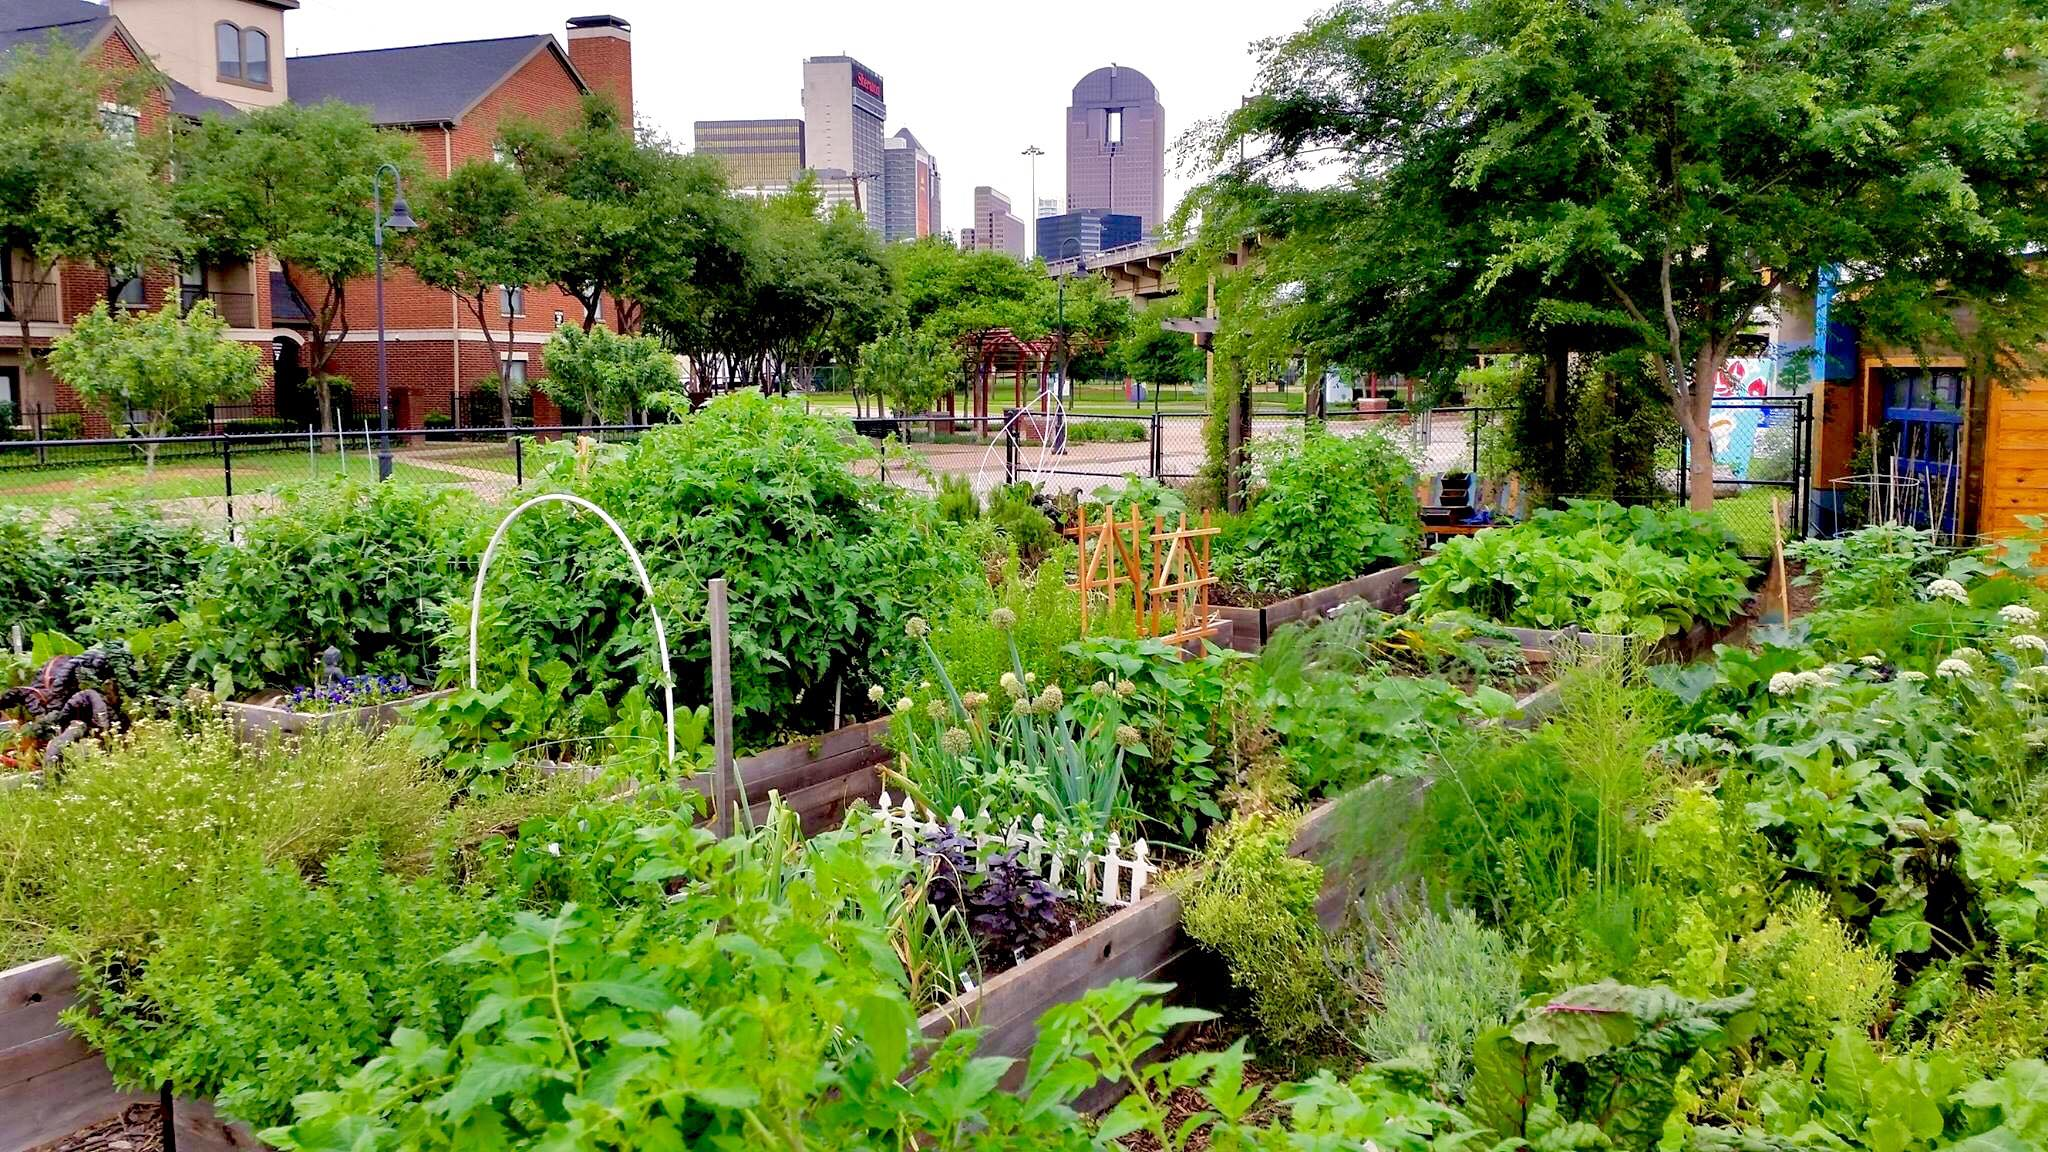 This is an outdoor urban garden open for people to buy a plot for their own personal garden of fruits, vegetables, and flowers.